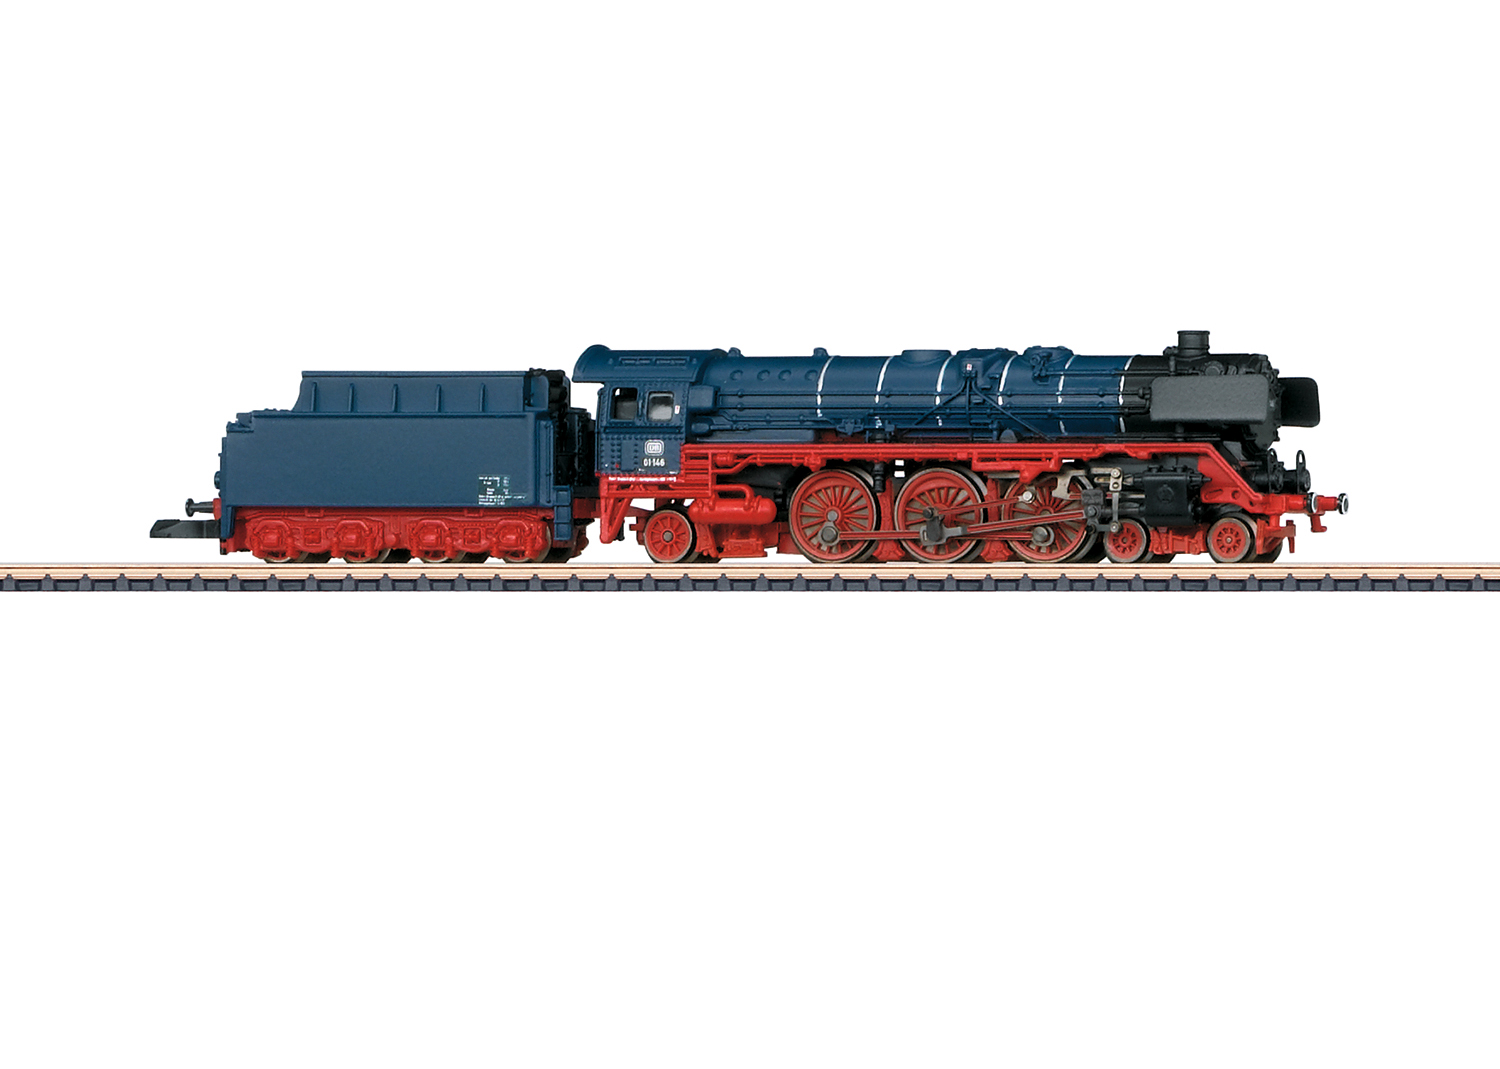 Class 01 DB Steam Locomotive with a Tender